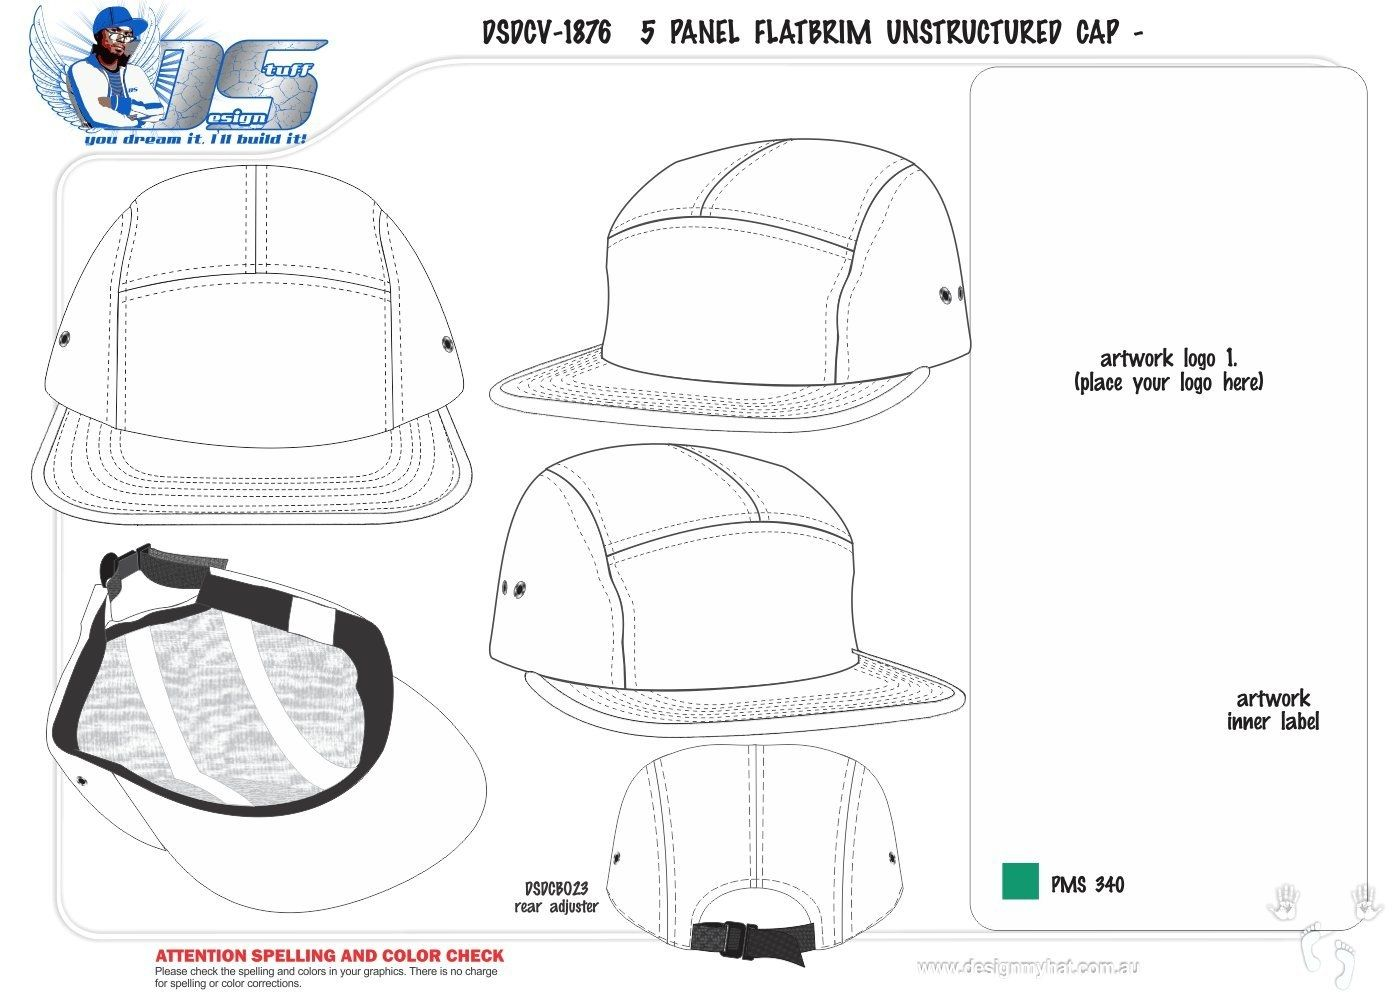 eda44fd04427a7 Image result for sewing pattern for a 5 panel cap | drafting | Hat ...